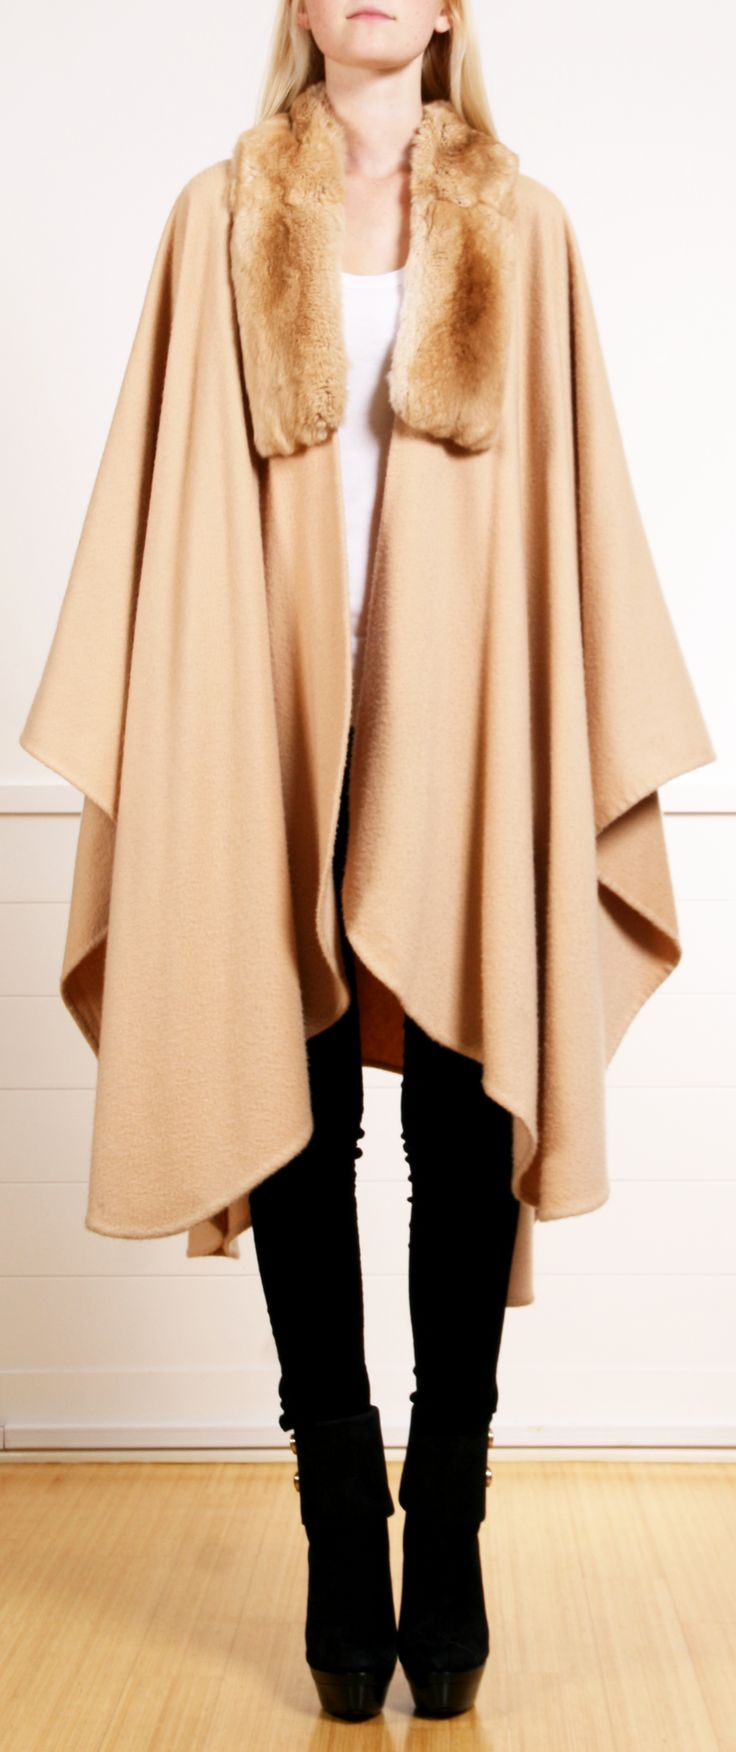 LORA PIANA CAPE @Shop-Hers: